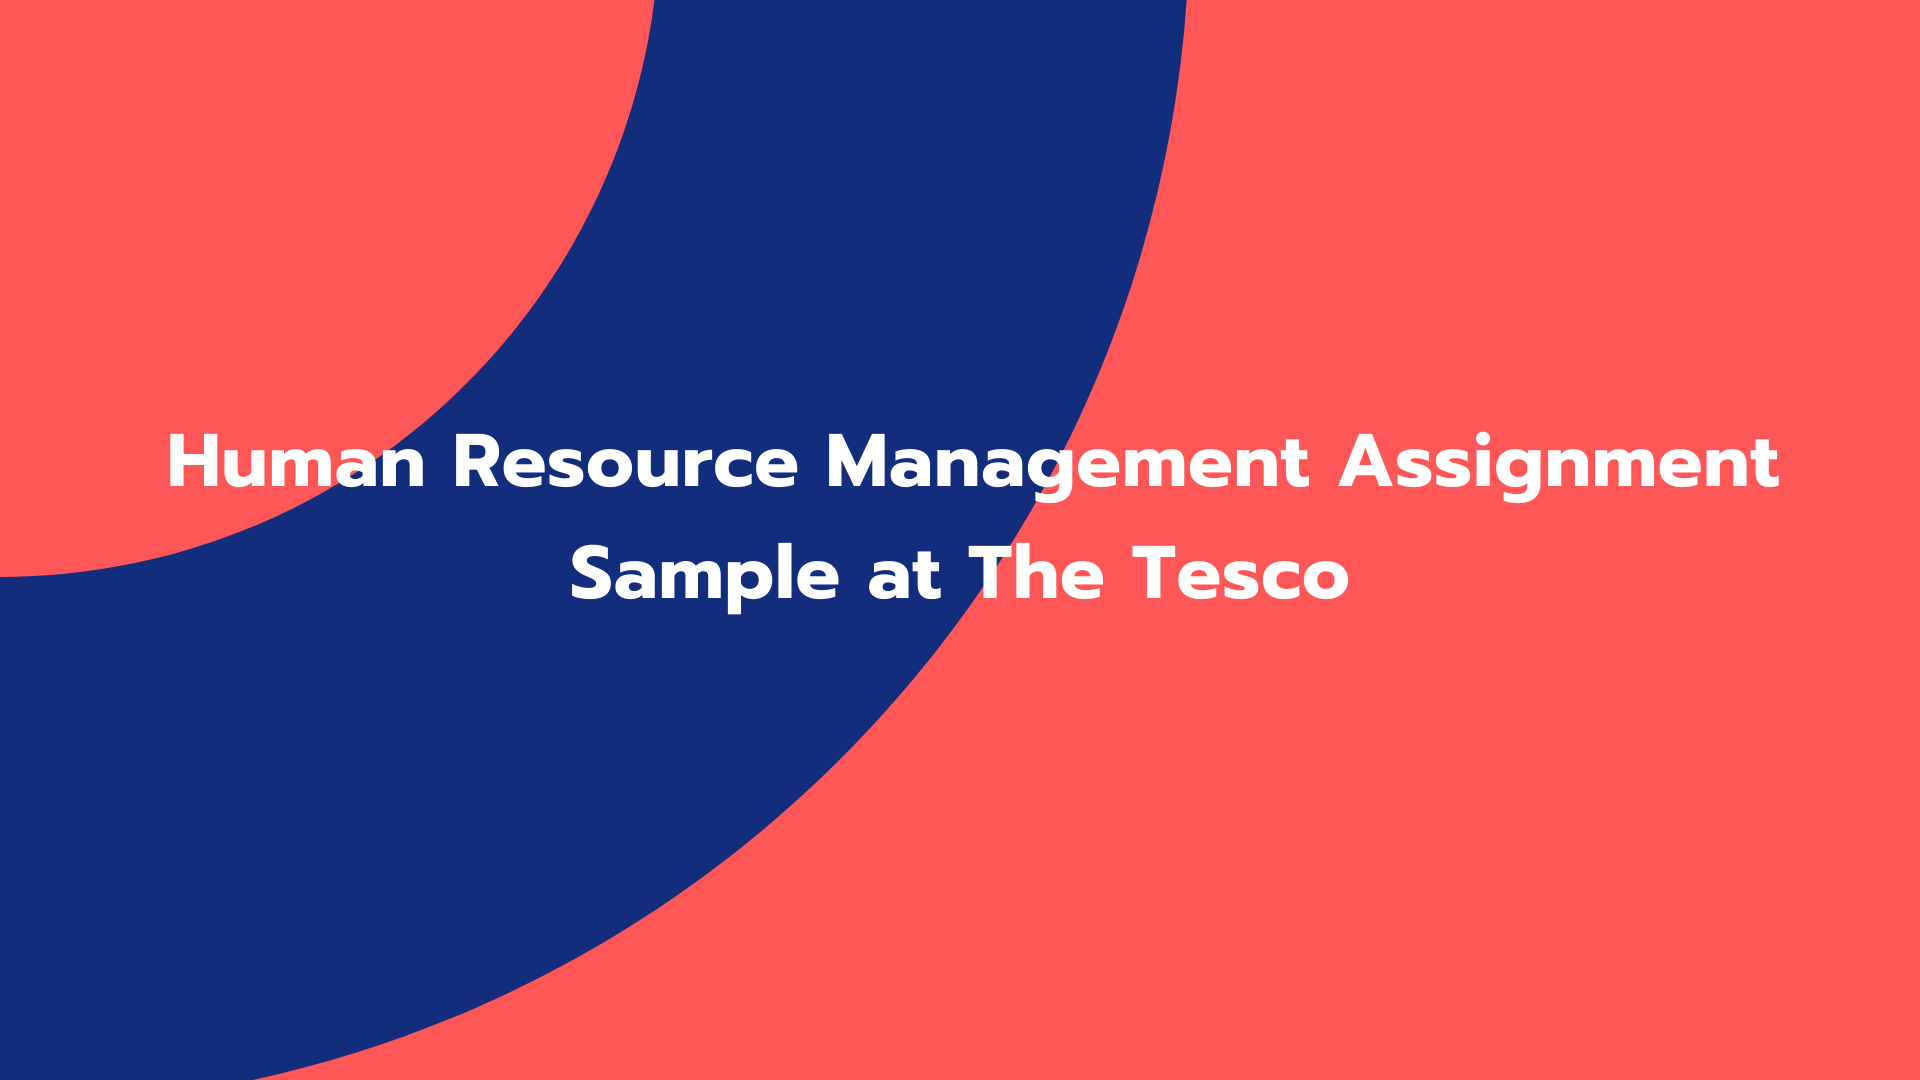 Human Resource Management Assignment Sample at The Tesco